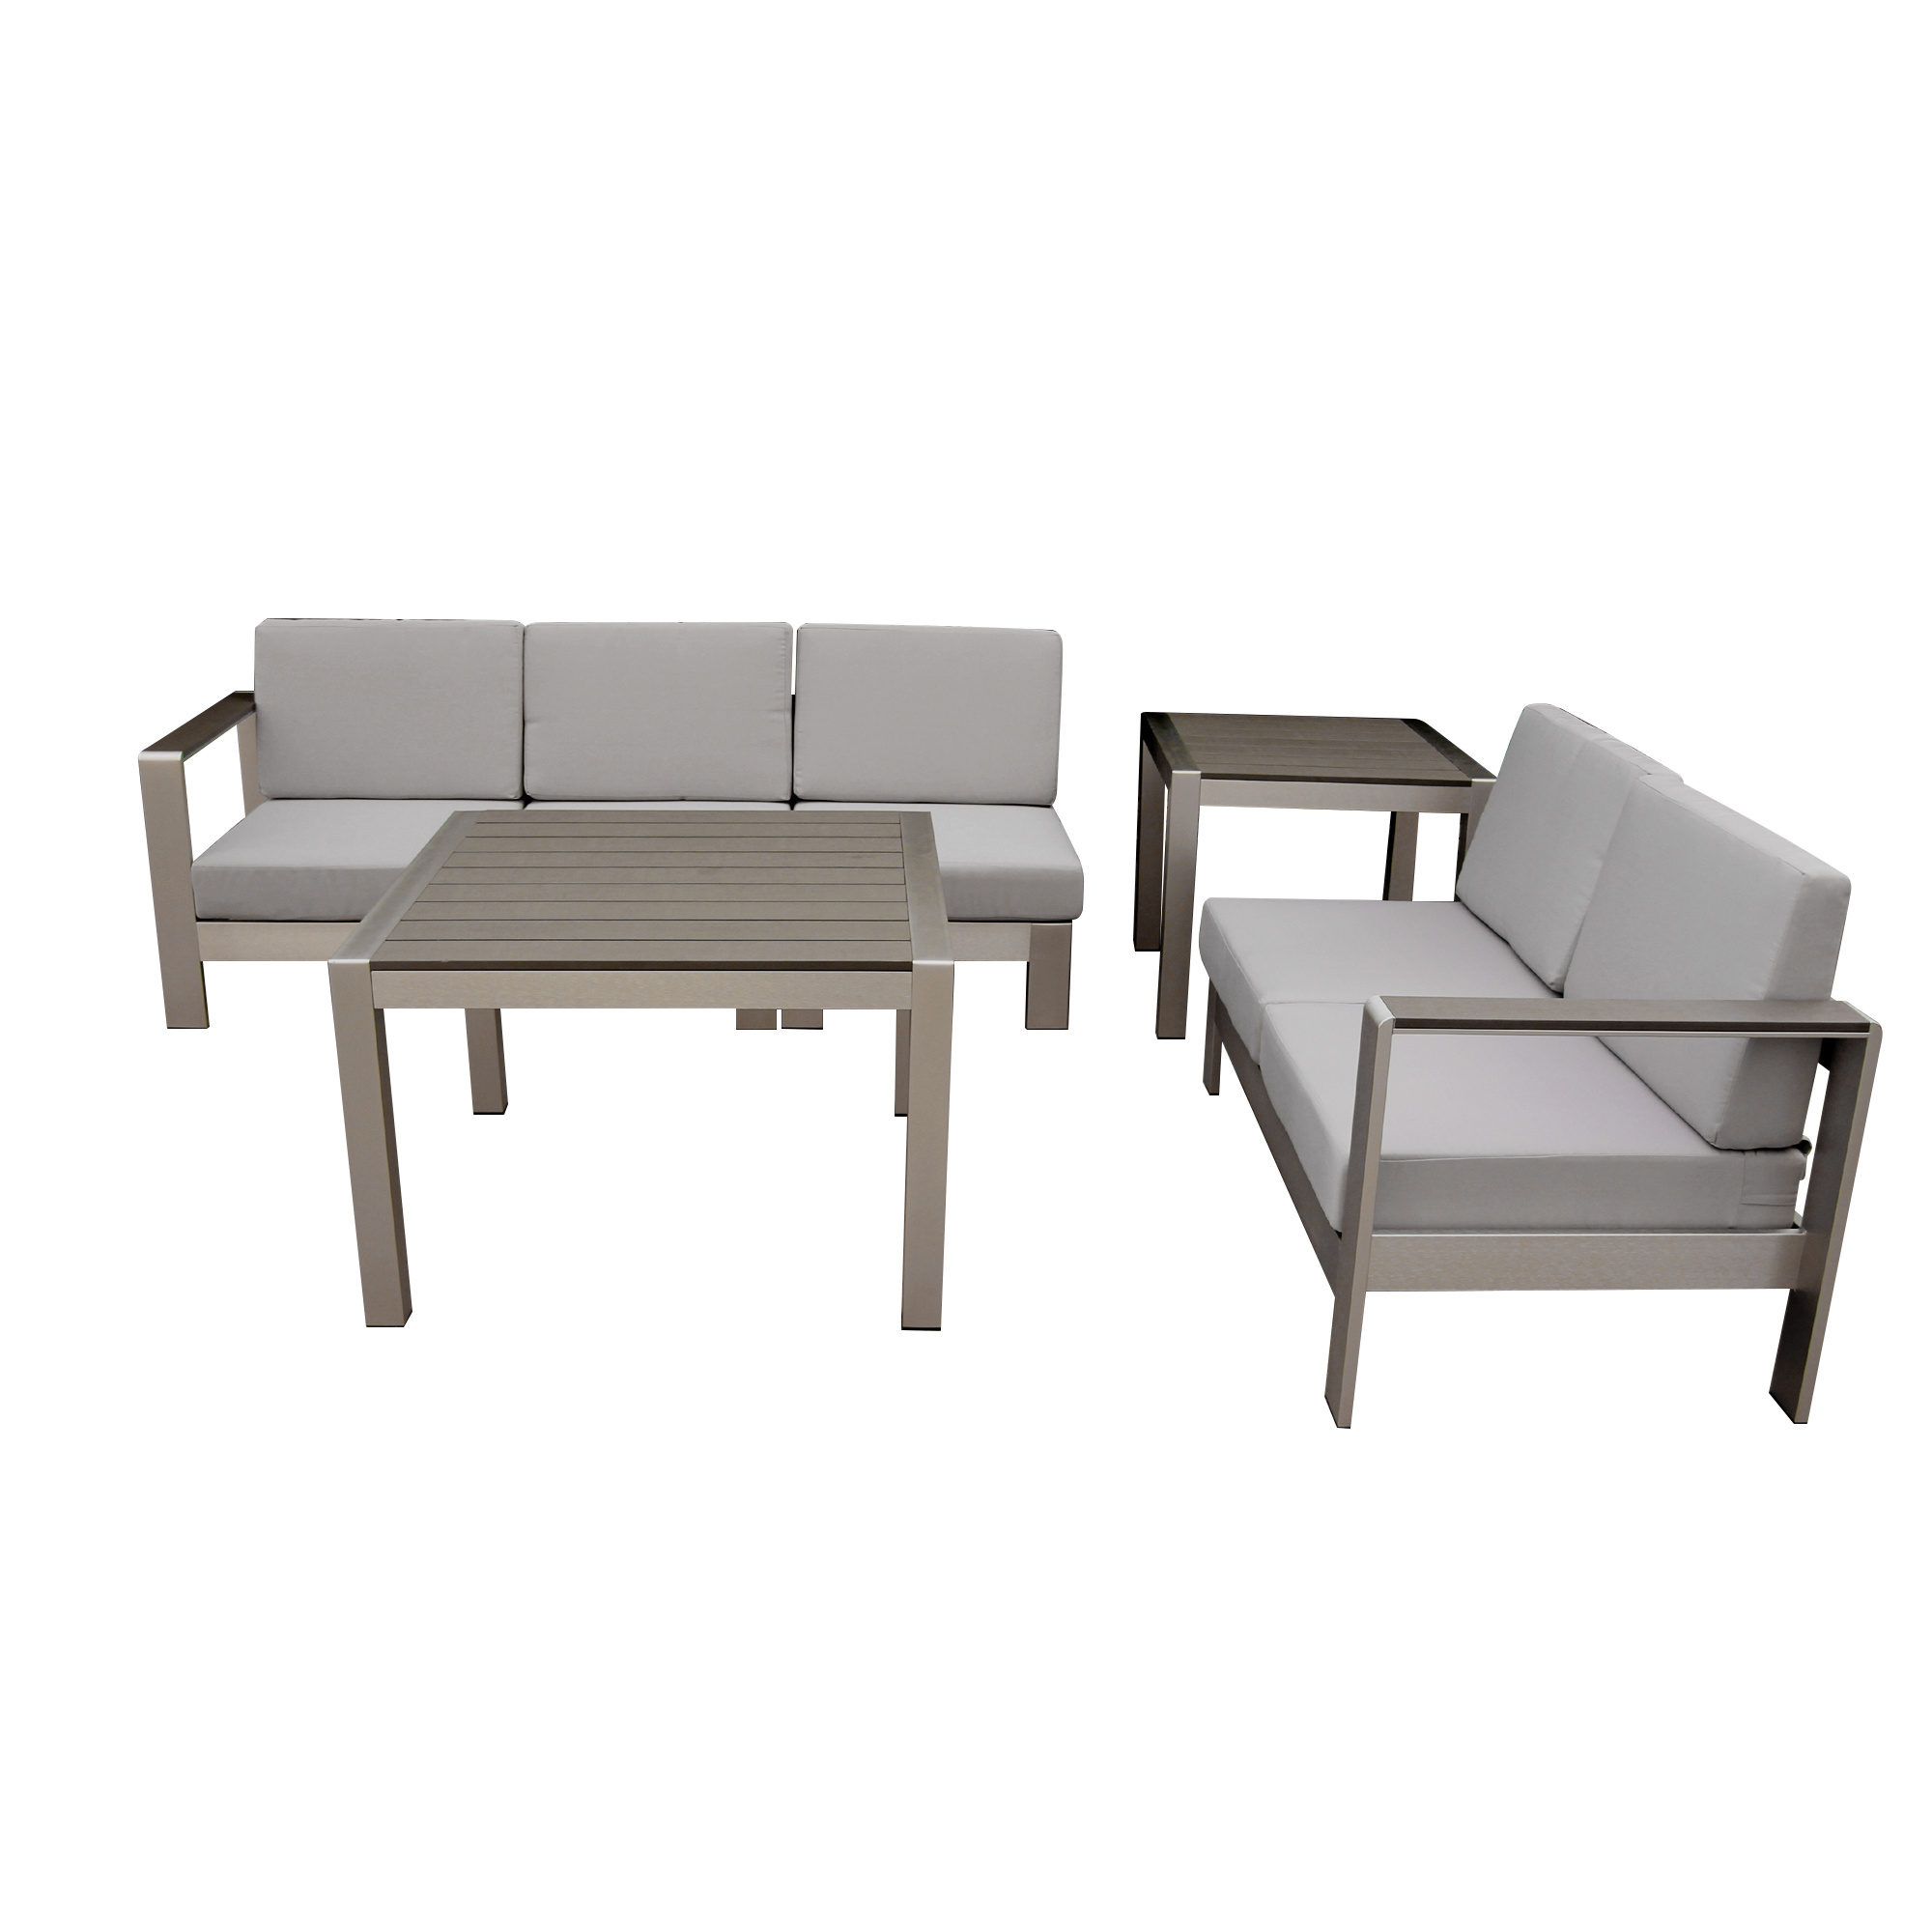 China modern good quality garden outdoor patio furniture different combination sofa coffee table with plastic wood top sofa set china garden outdoor